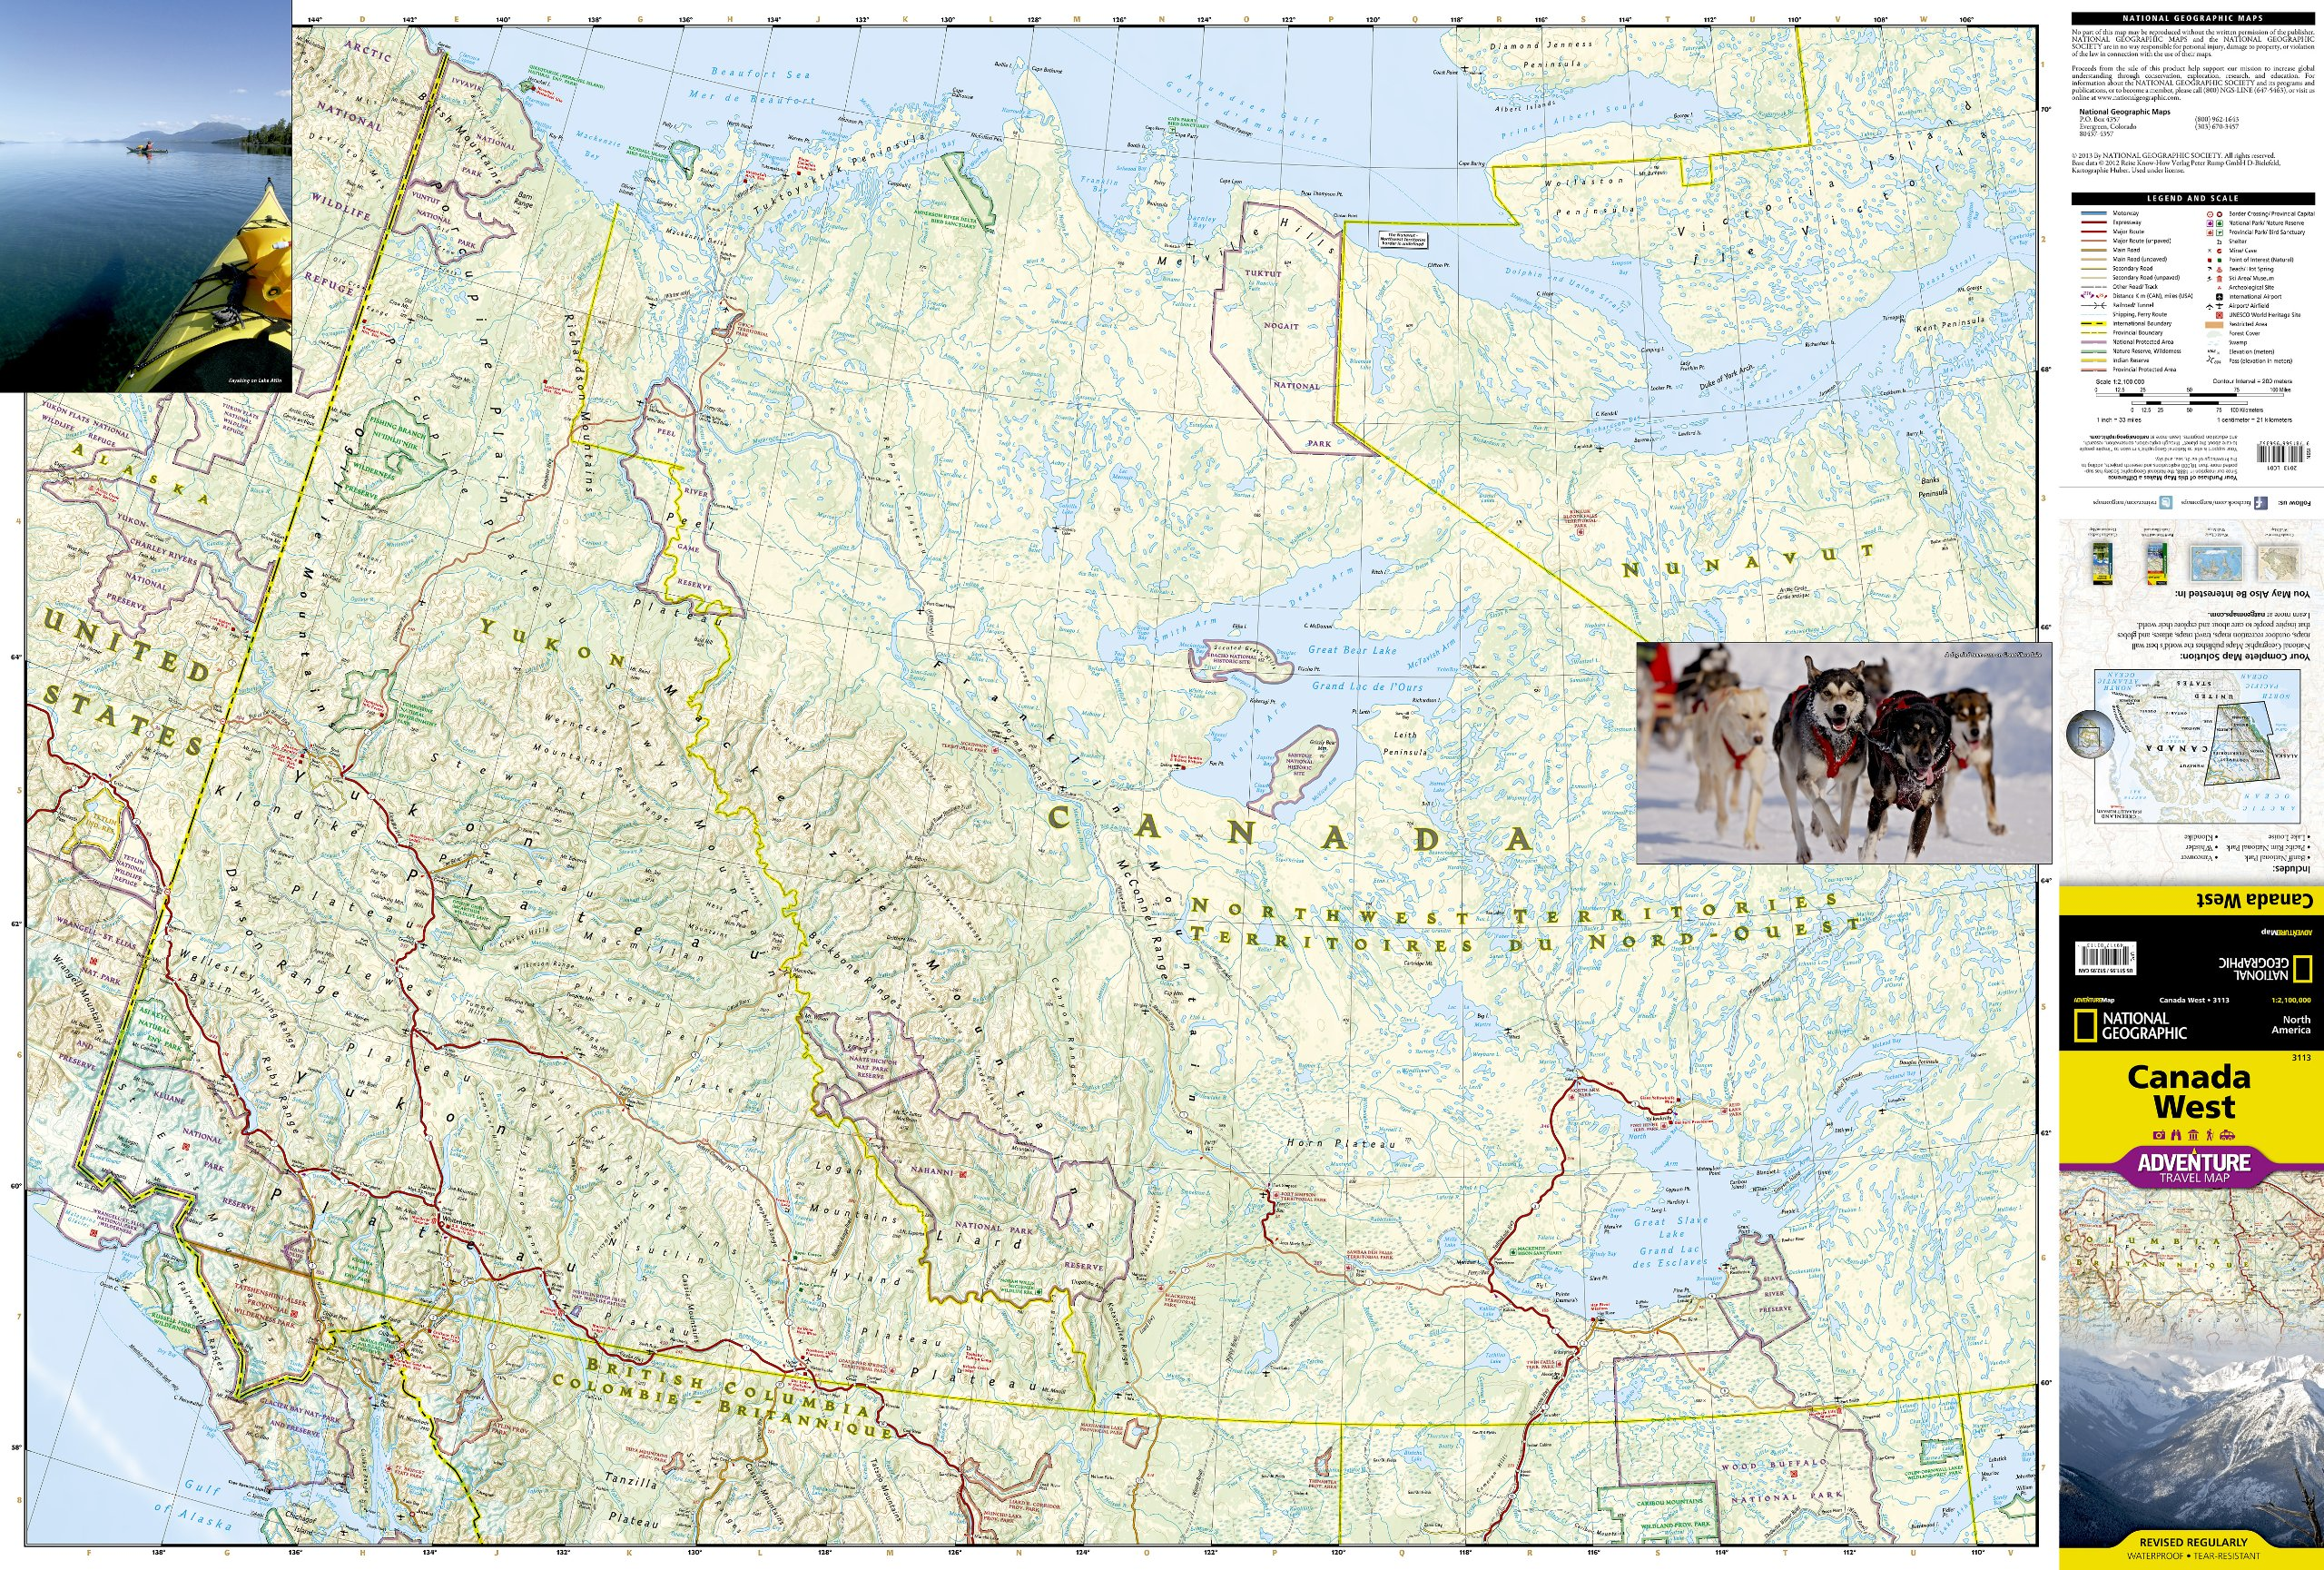 West Of Canada Map.Canada West National Geographic Adventure Map National Geographic